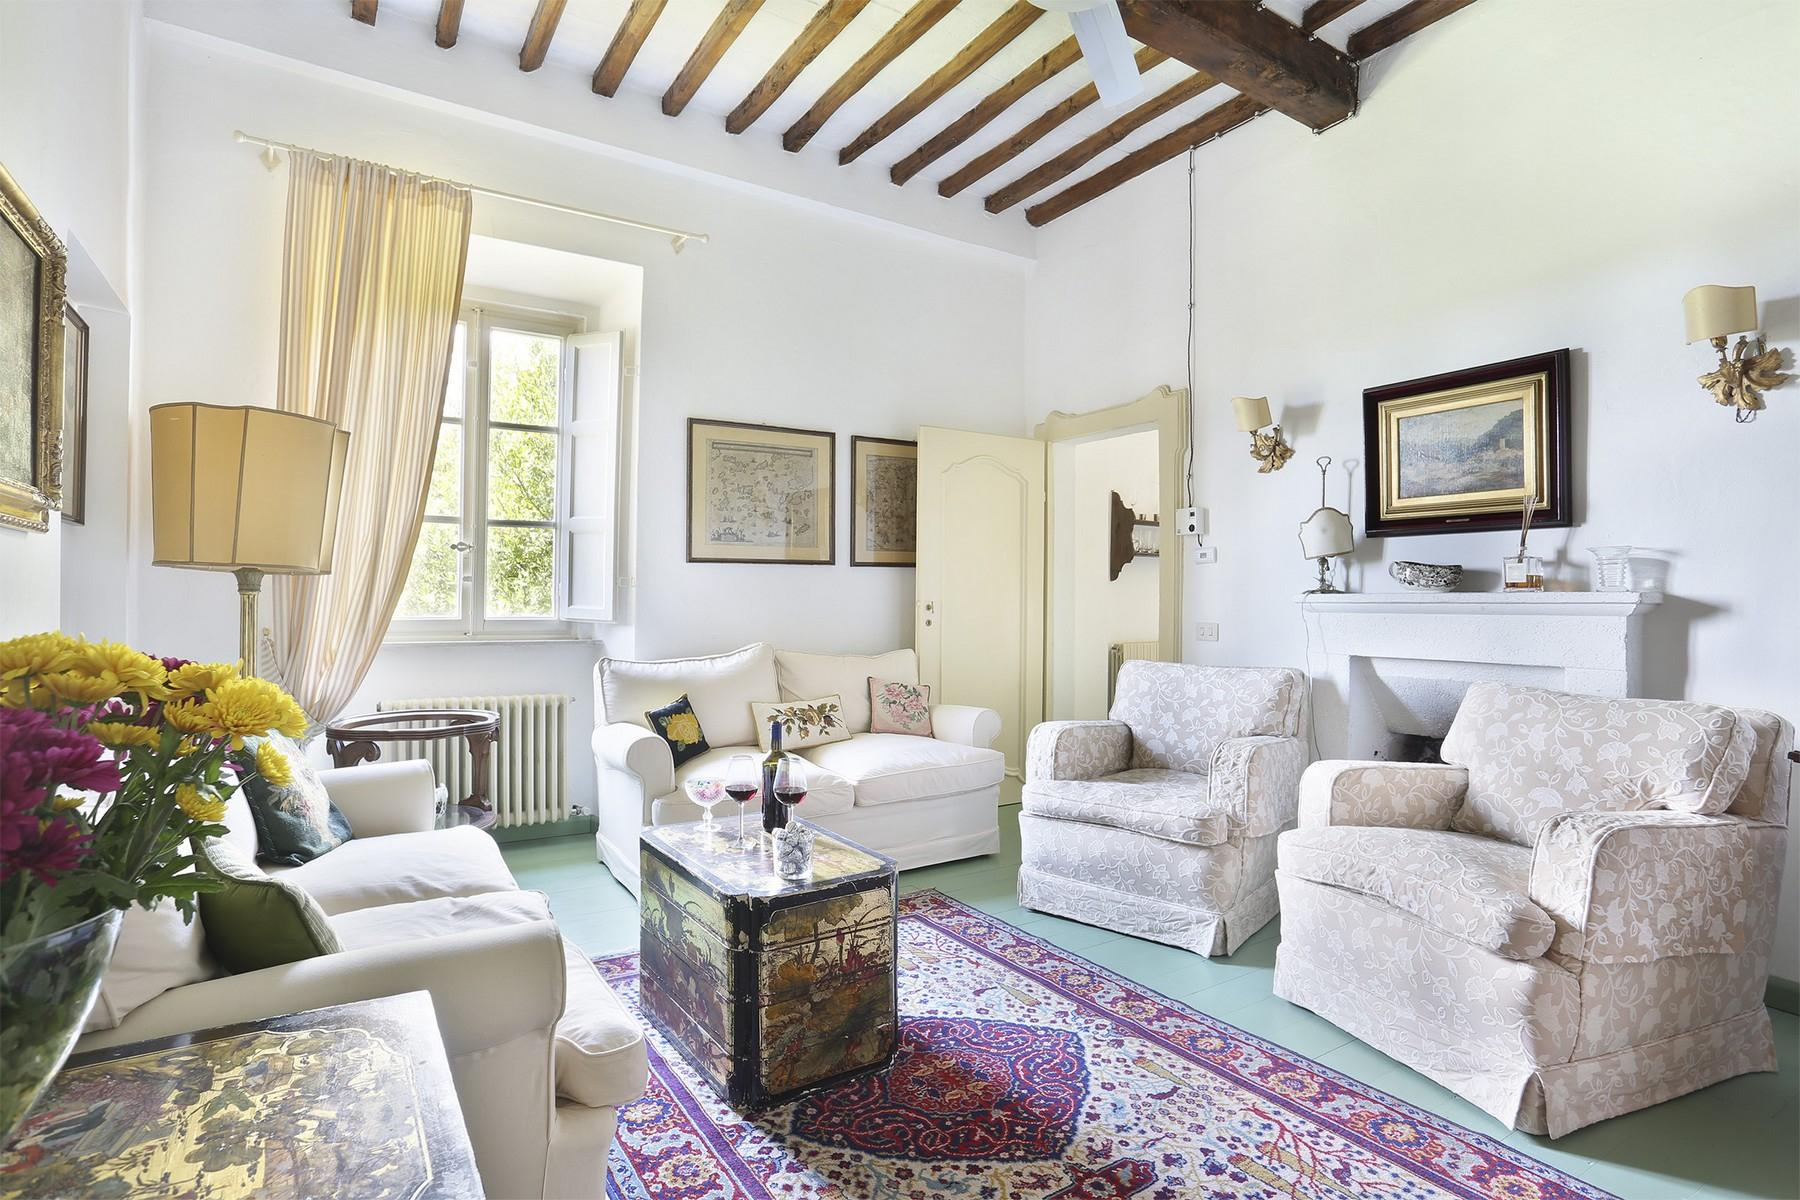 Beautiful villa with swimming pool in the countryside of Lucca - 20